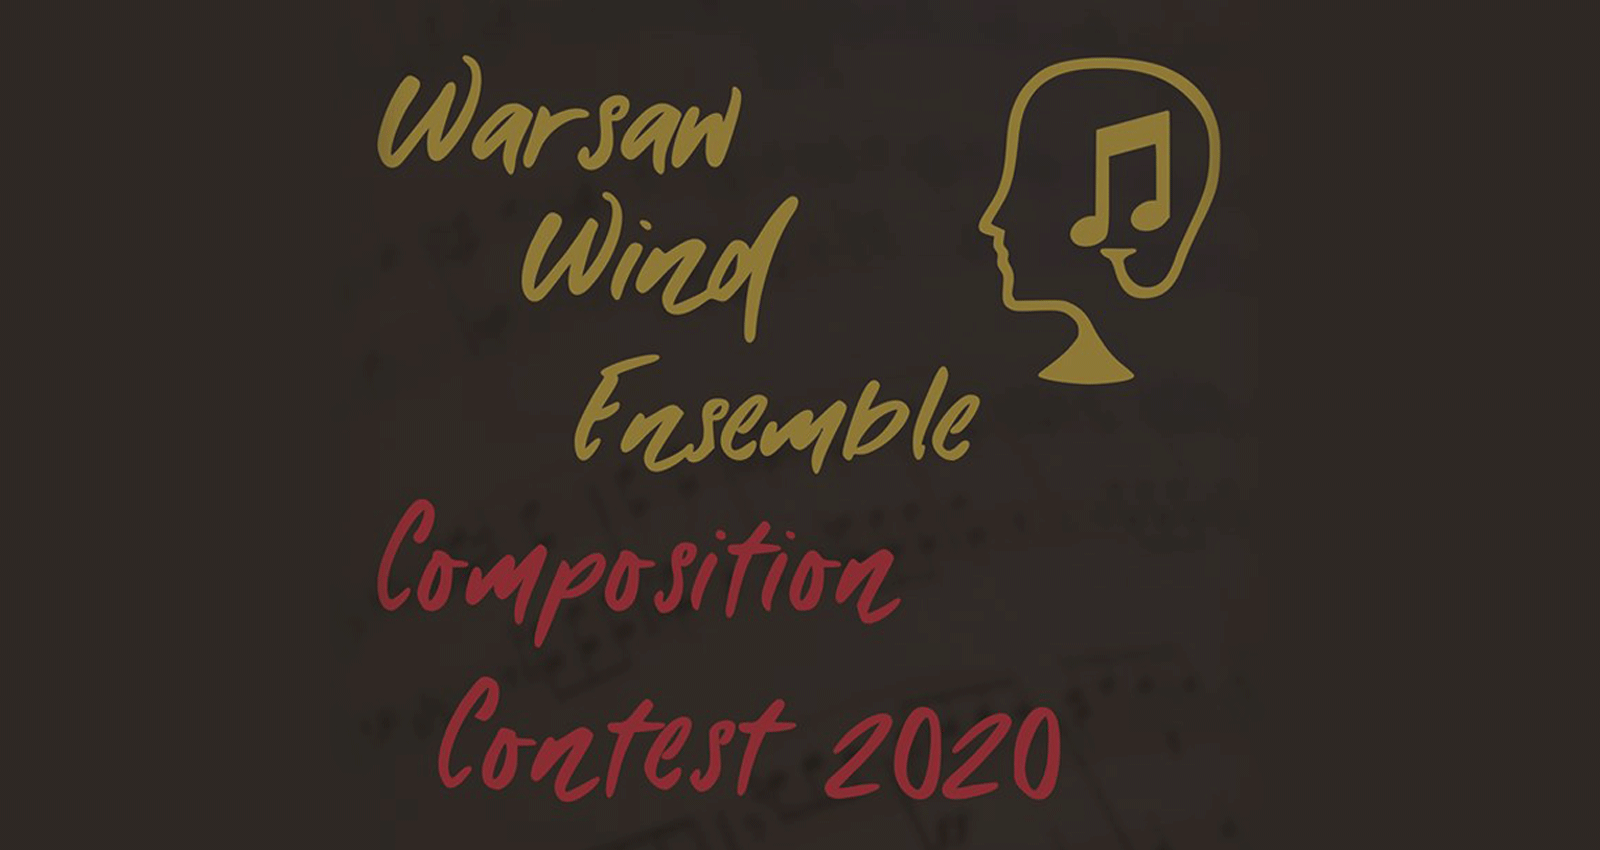 Warsaw Wind Ensemble Composition Contest 2020 – prima ediție